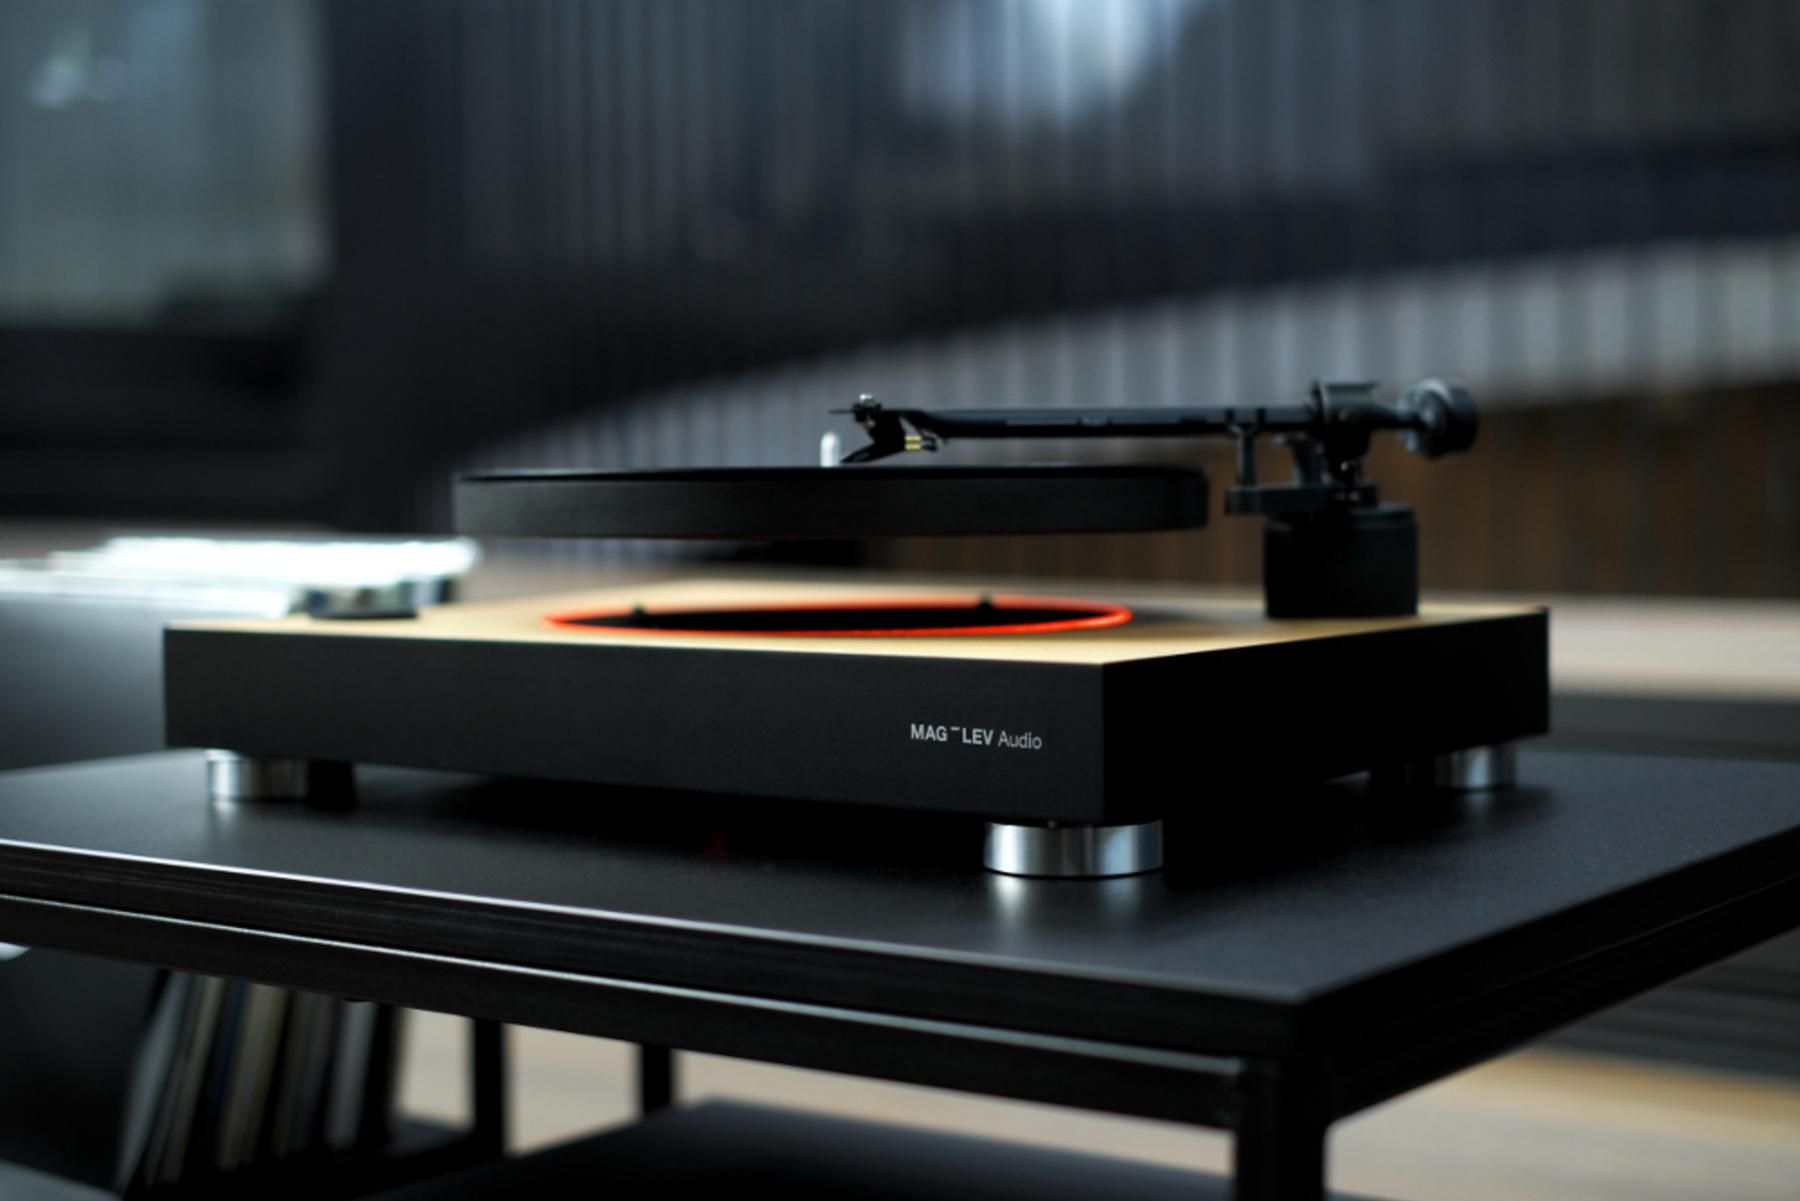 Zero-gravity record player raises around $500,000 on Kickstarter. The levitating turntable will be slated for an August 2017 shipping date.